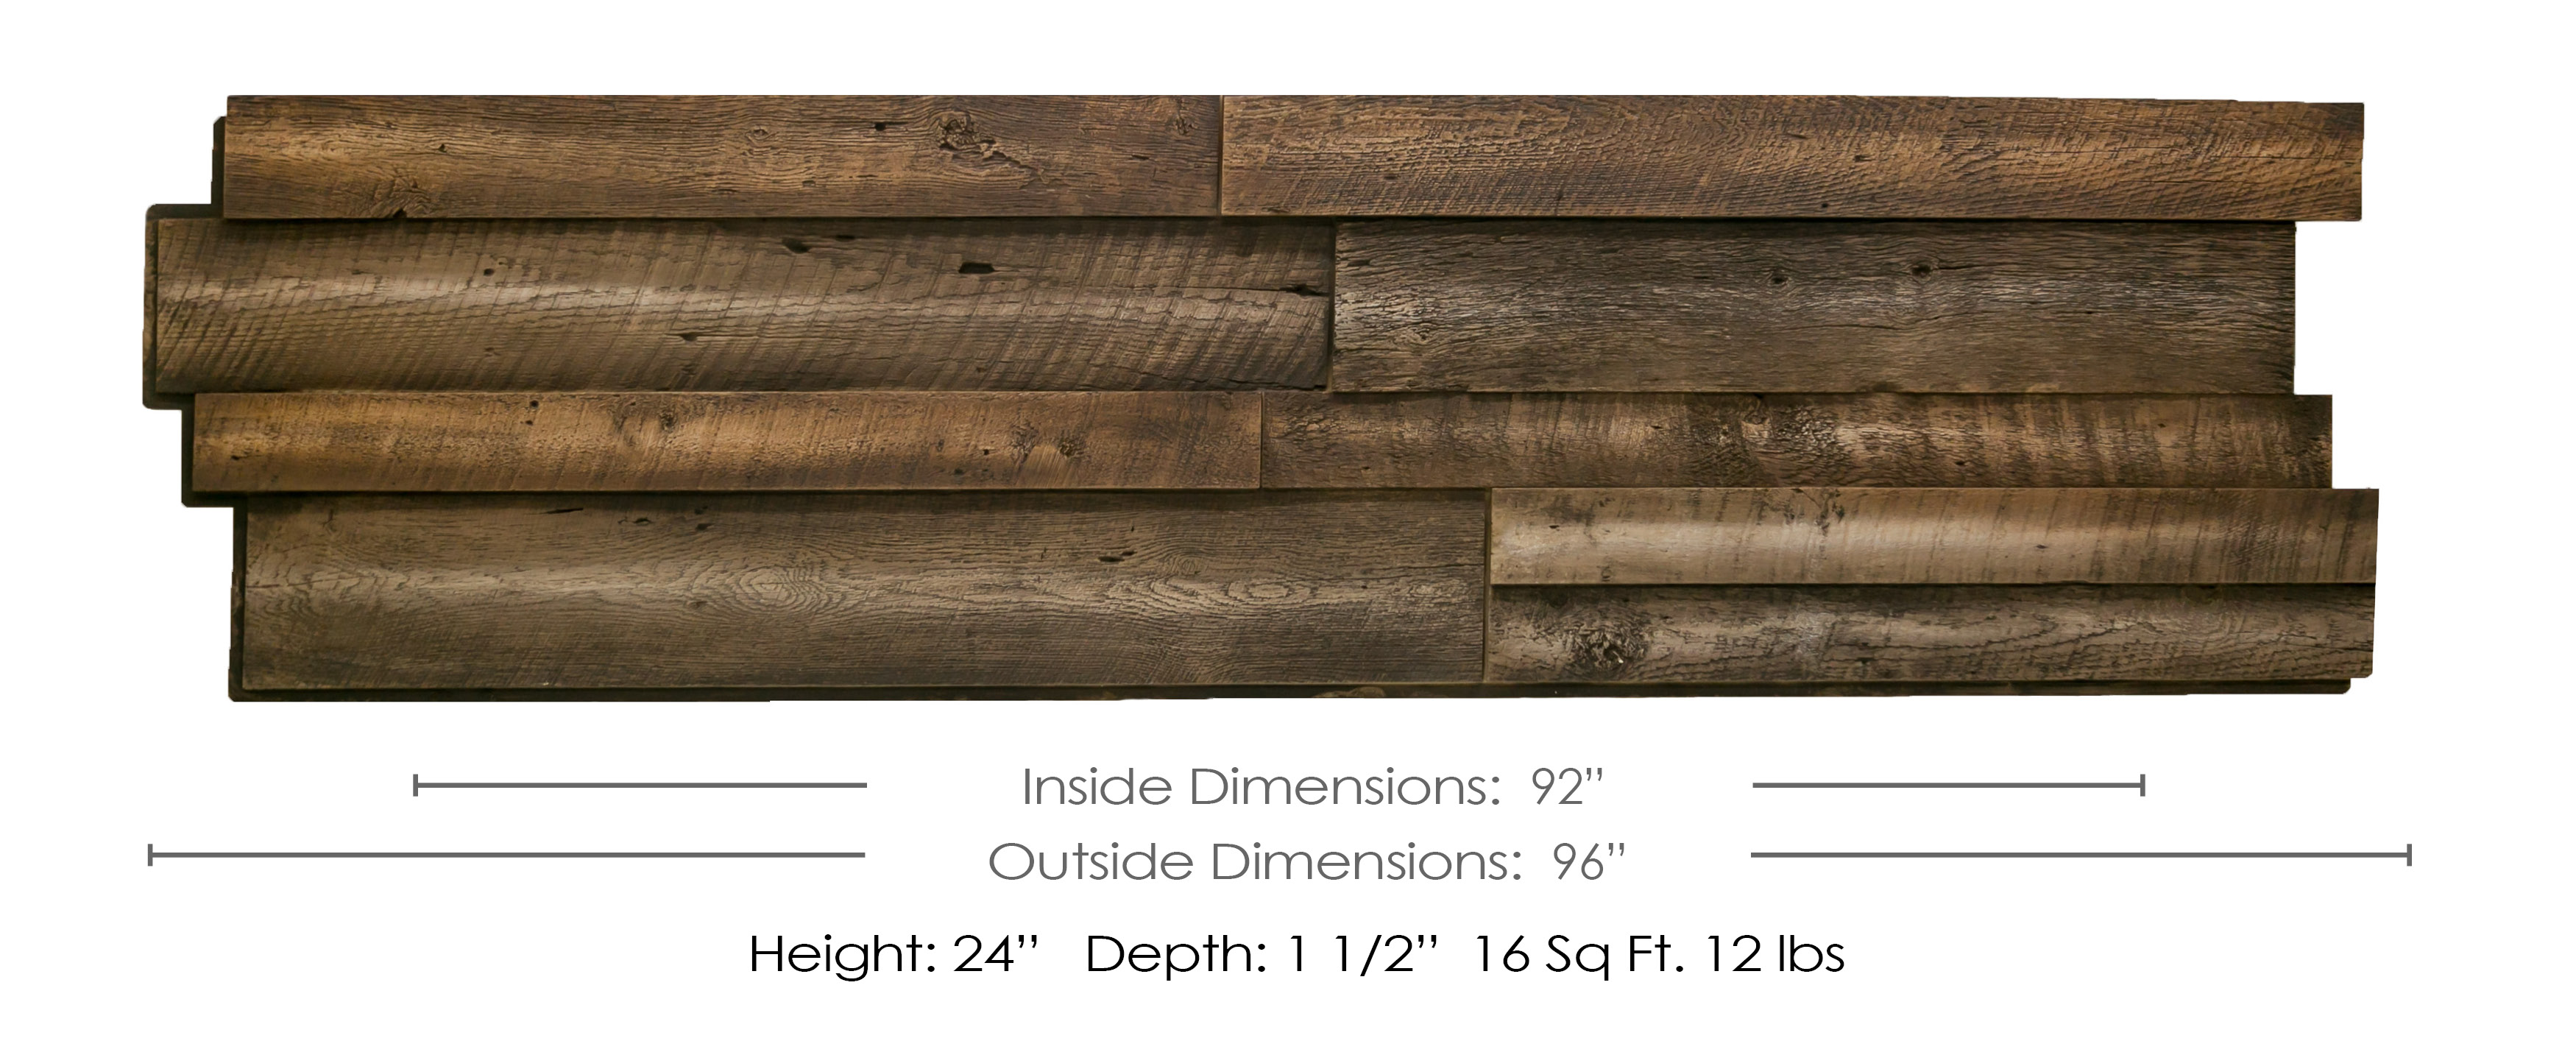 Reclaimed Wood Dimensions